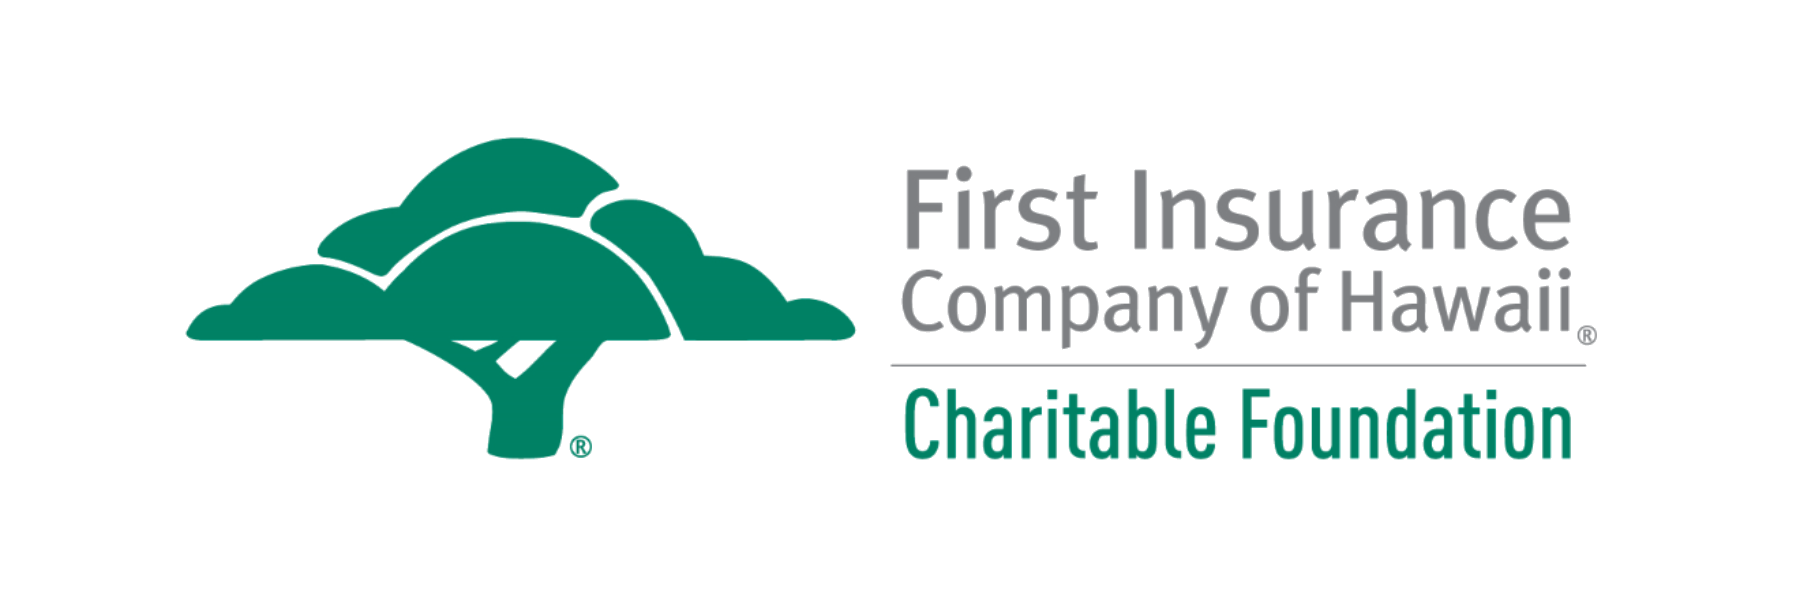 FICOH_Charitable_Trust_Transparent.png